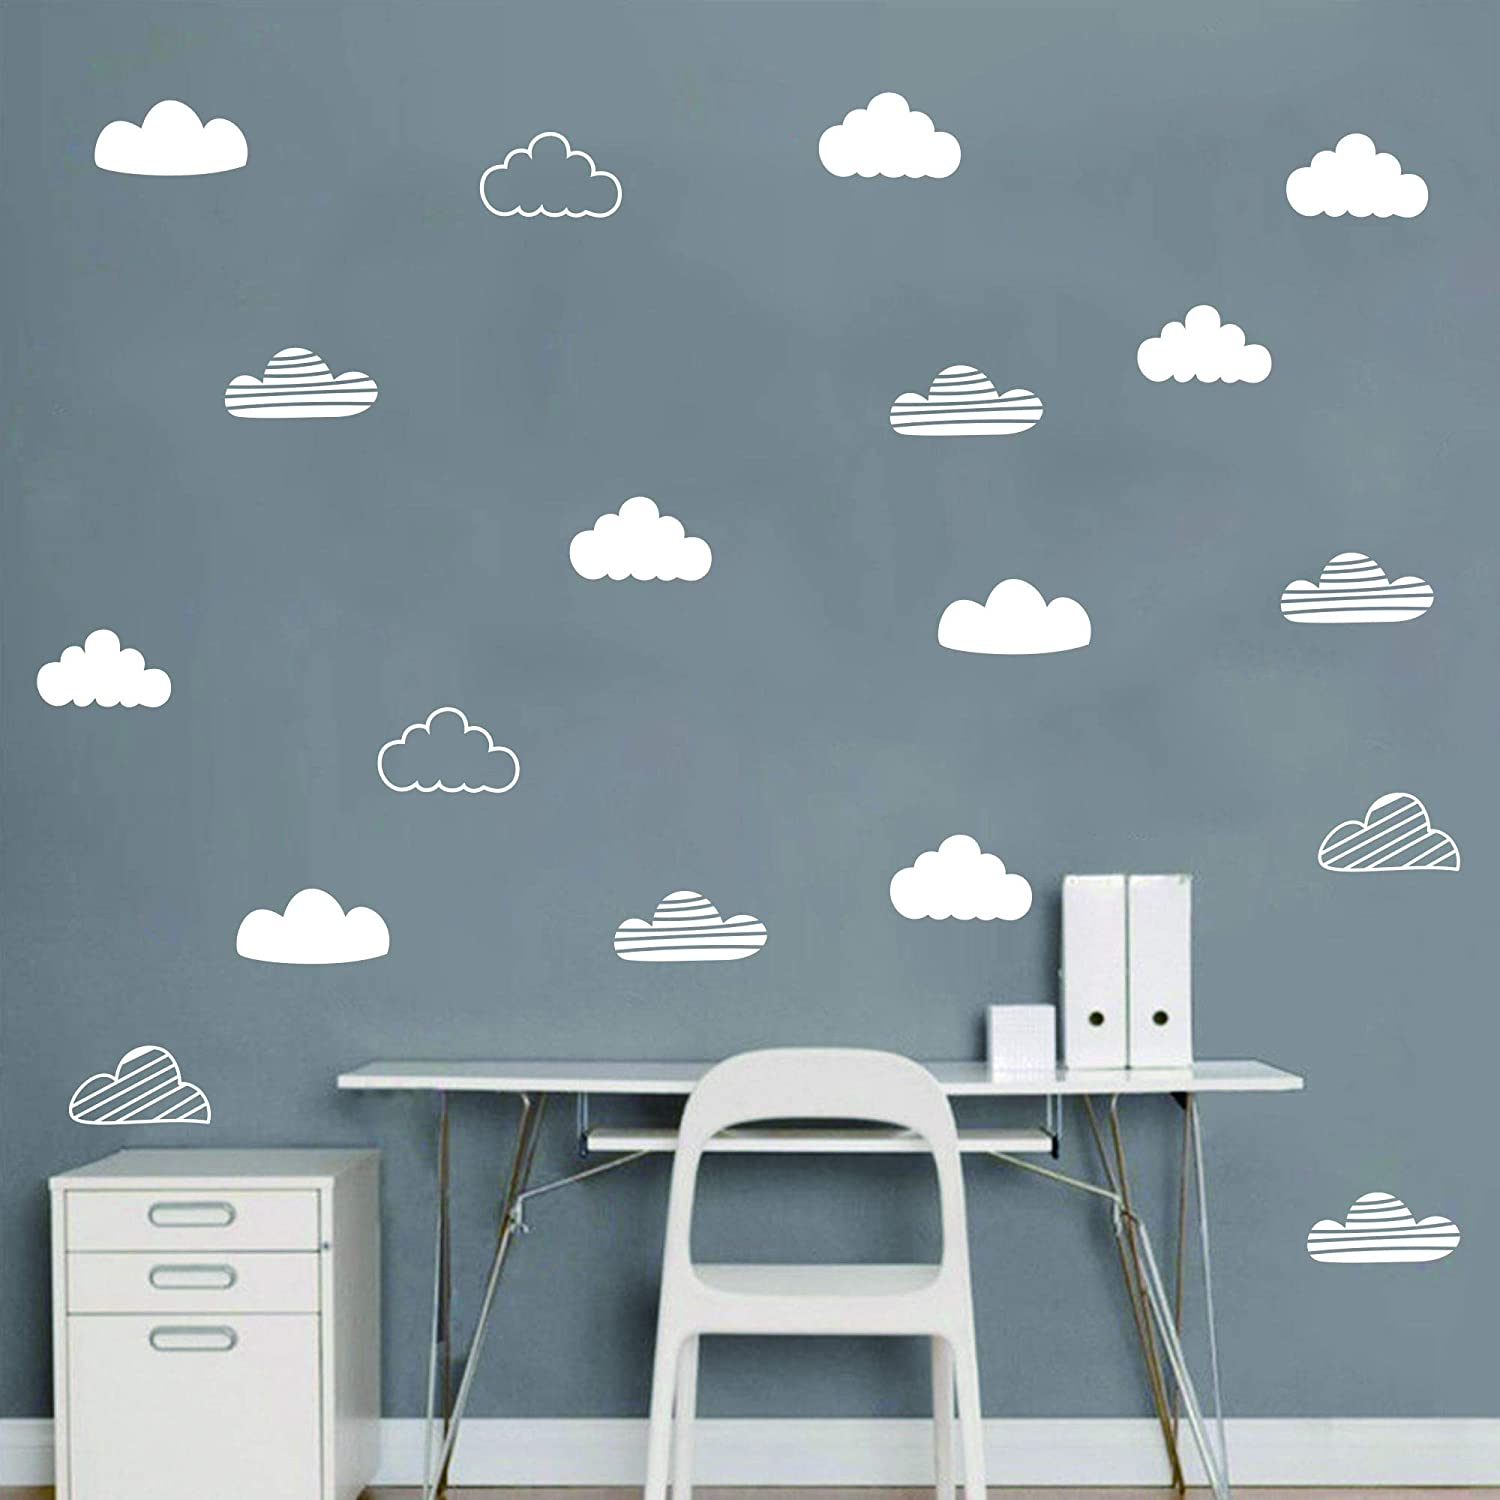 24 Pcs/Set Clouds Decal Vinyl Wall Sticker for Kids Room Nursery Decoration Boy Girl Child Bedroom Living Room Art Decor Home House Design Mural YMX57 (White)